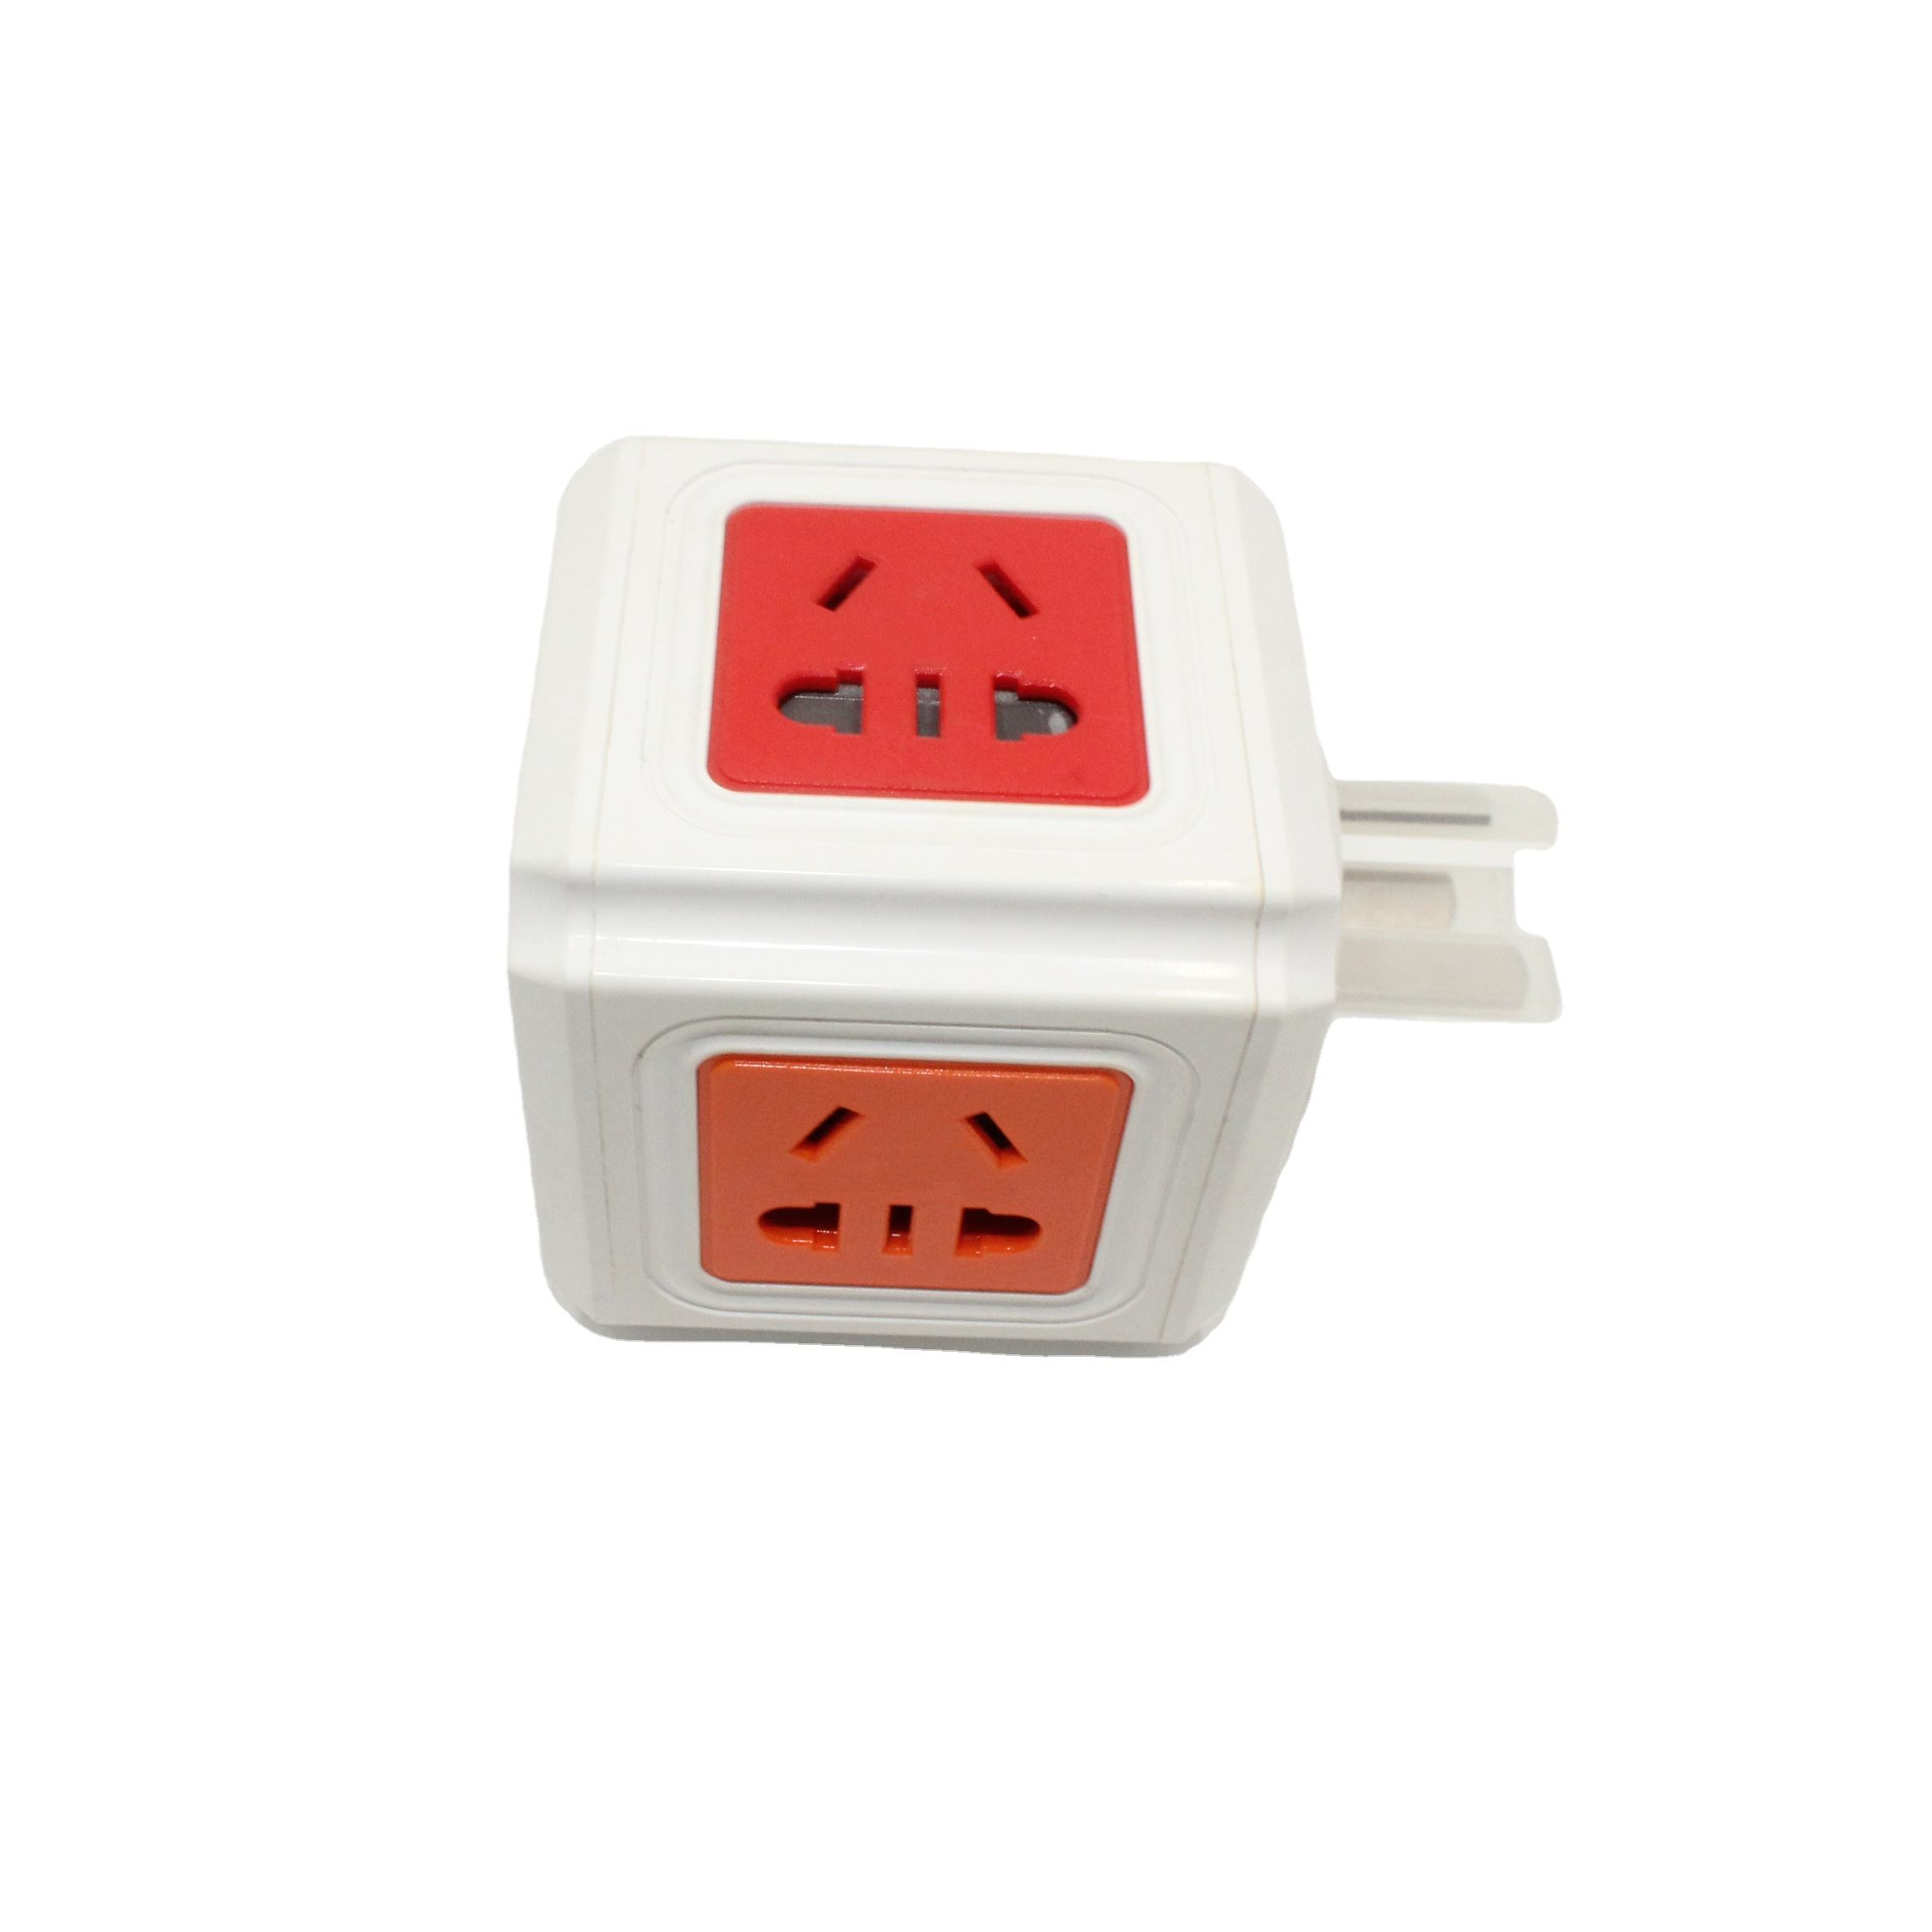 Small Rubik's Cube Socket USB Socket Multi-Port with Type-C Port Plug Row Multi-Functional Plug Strip